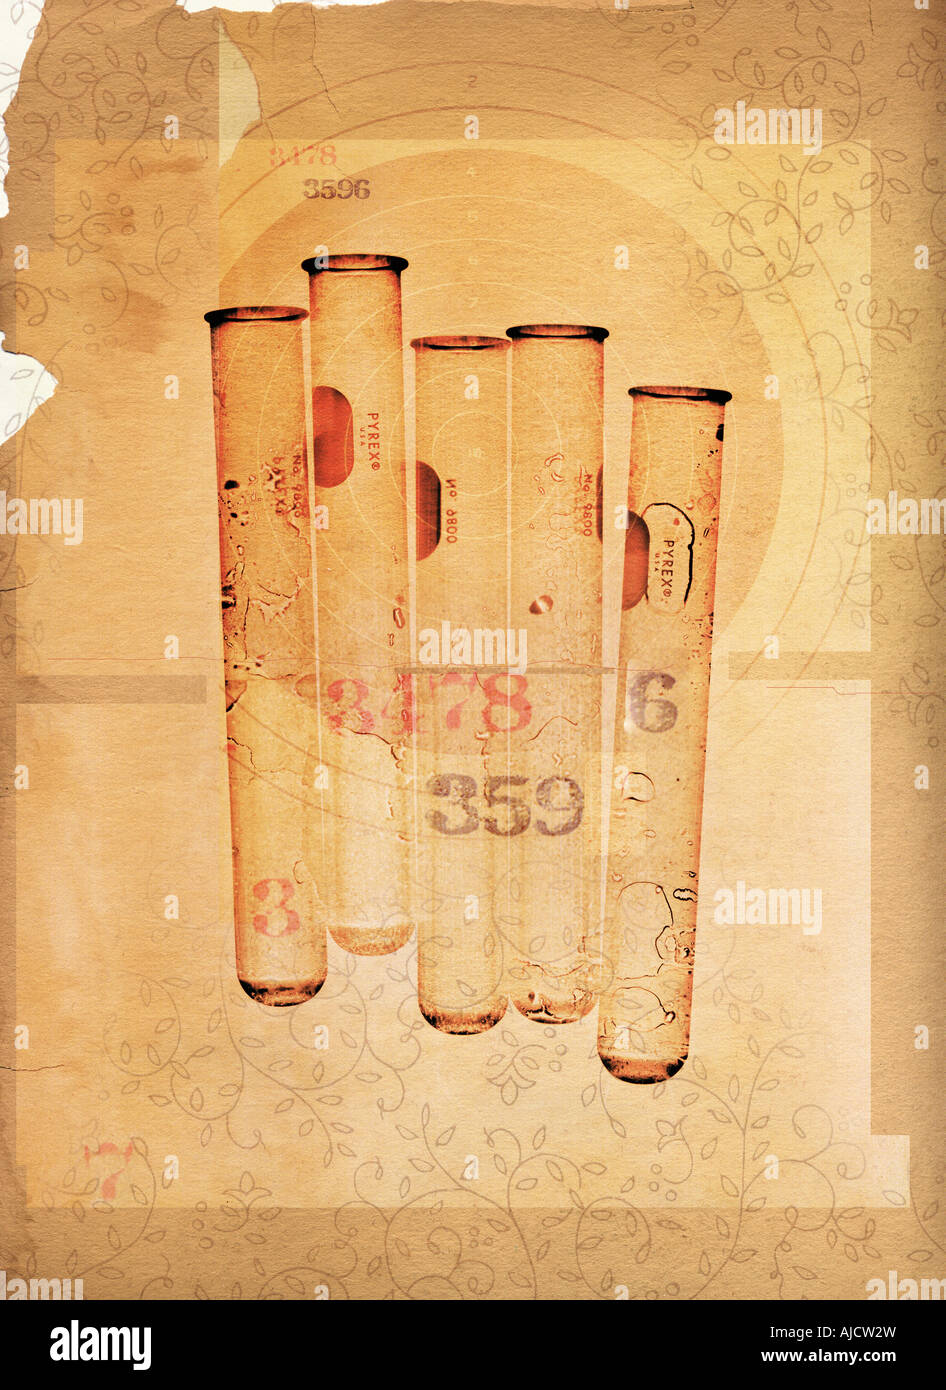 row of testubes with target in background on vintage paper showing forensics - Stock Image